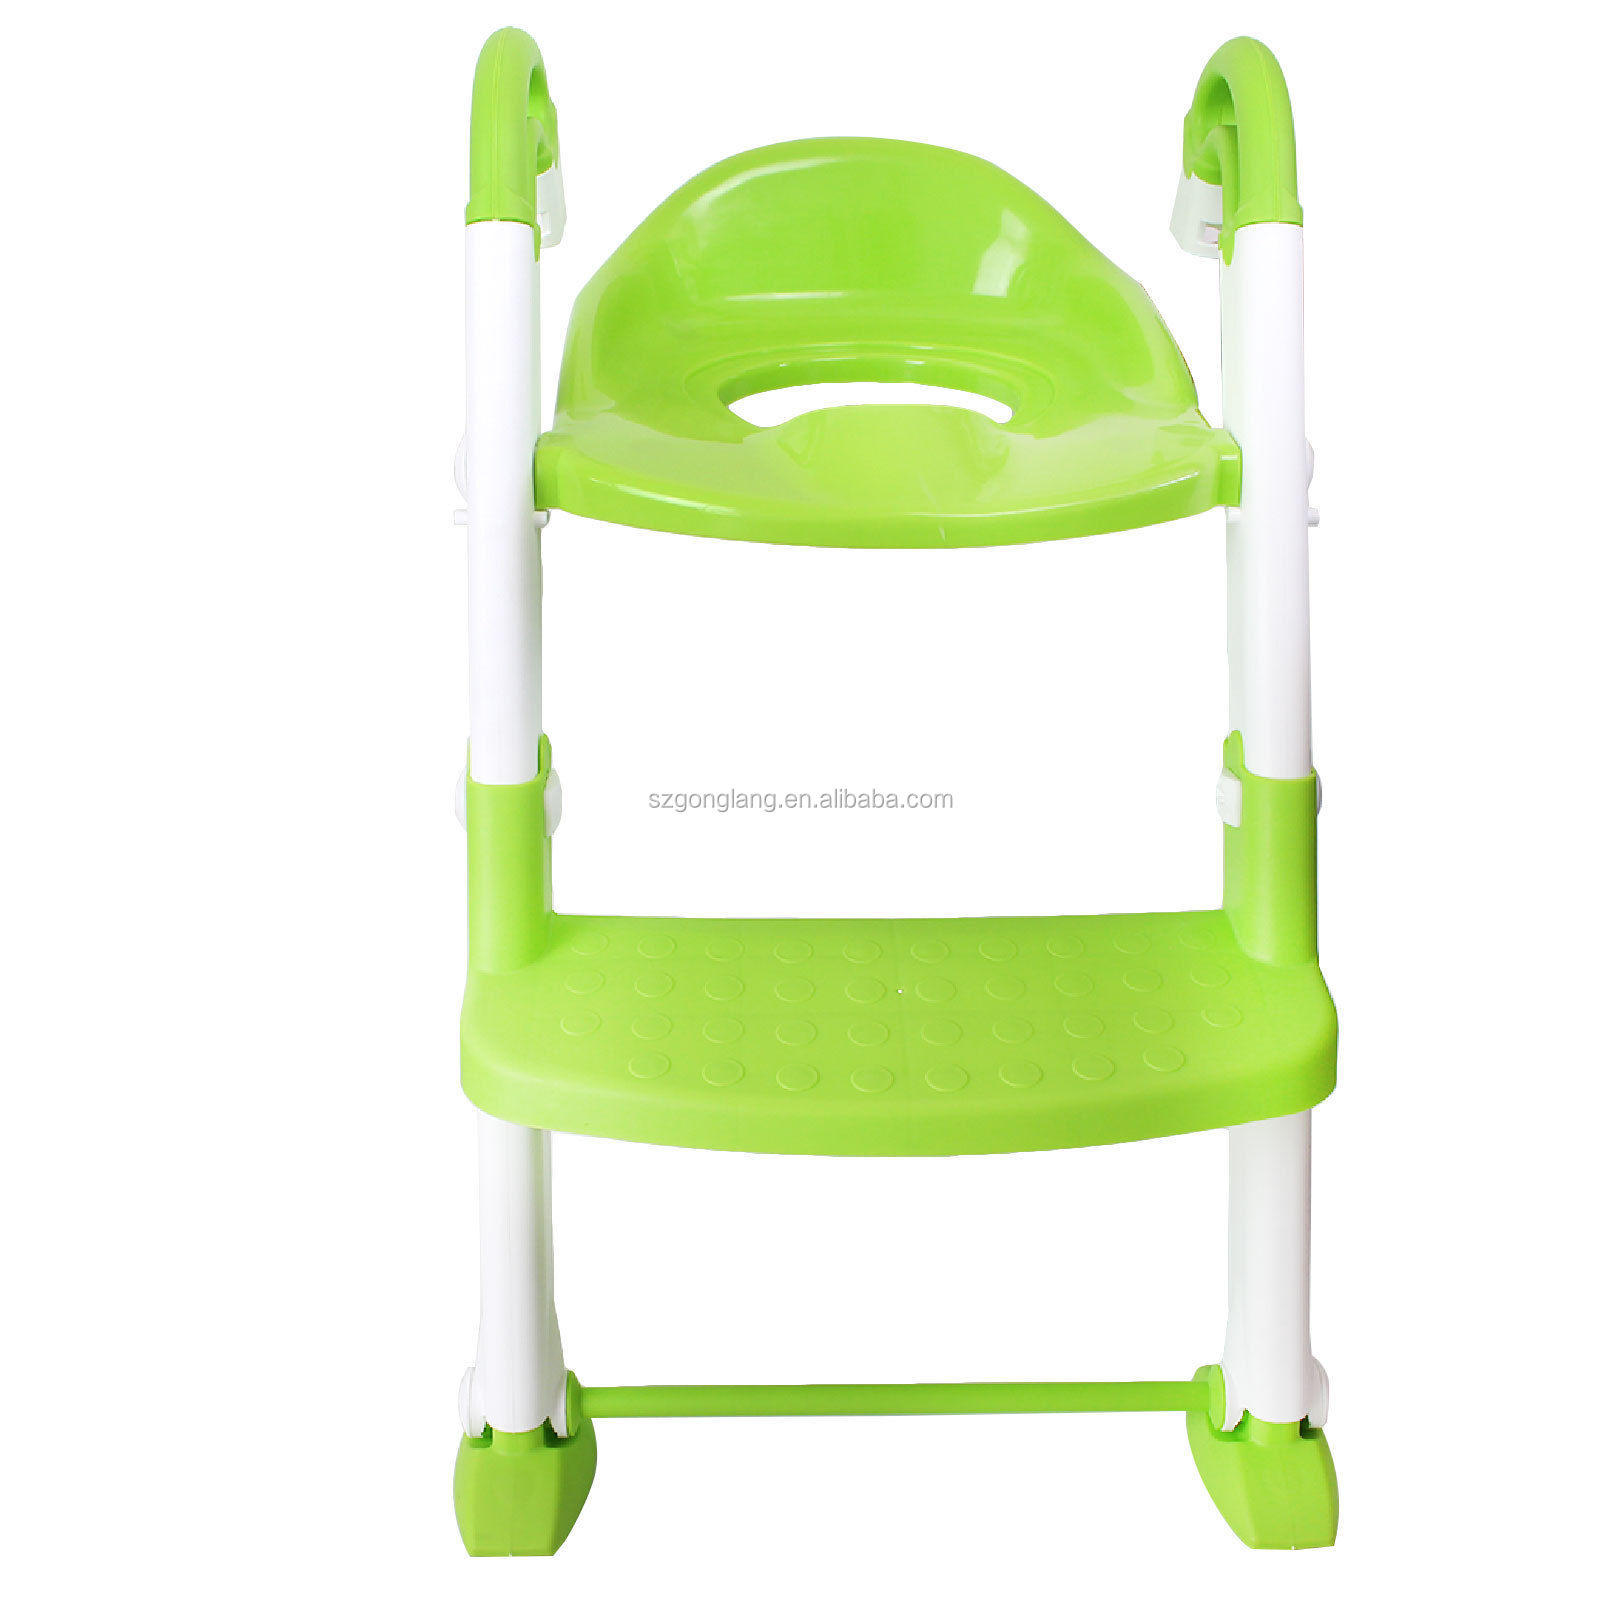 3 in 1 potty chair portable reading chairs alibaba manufacturer directory suppliers manufacturers